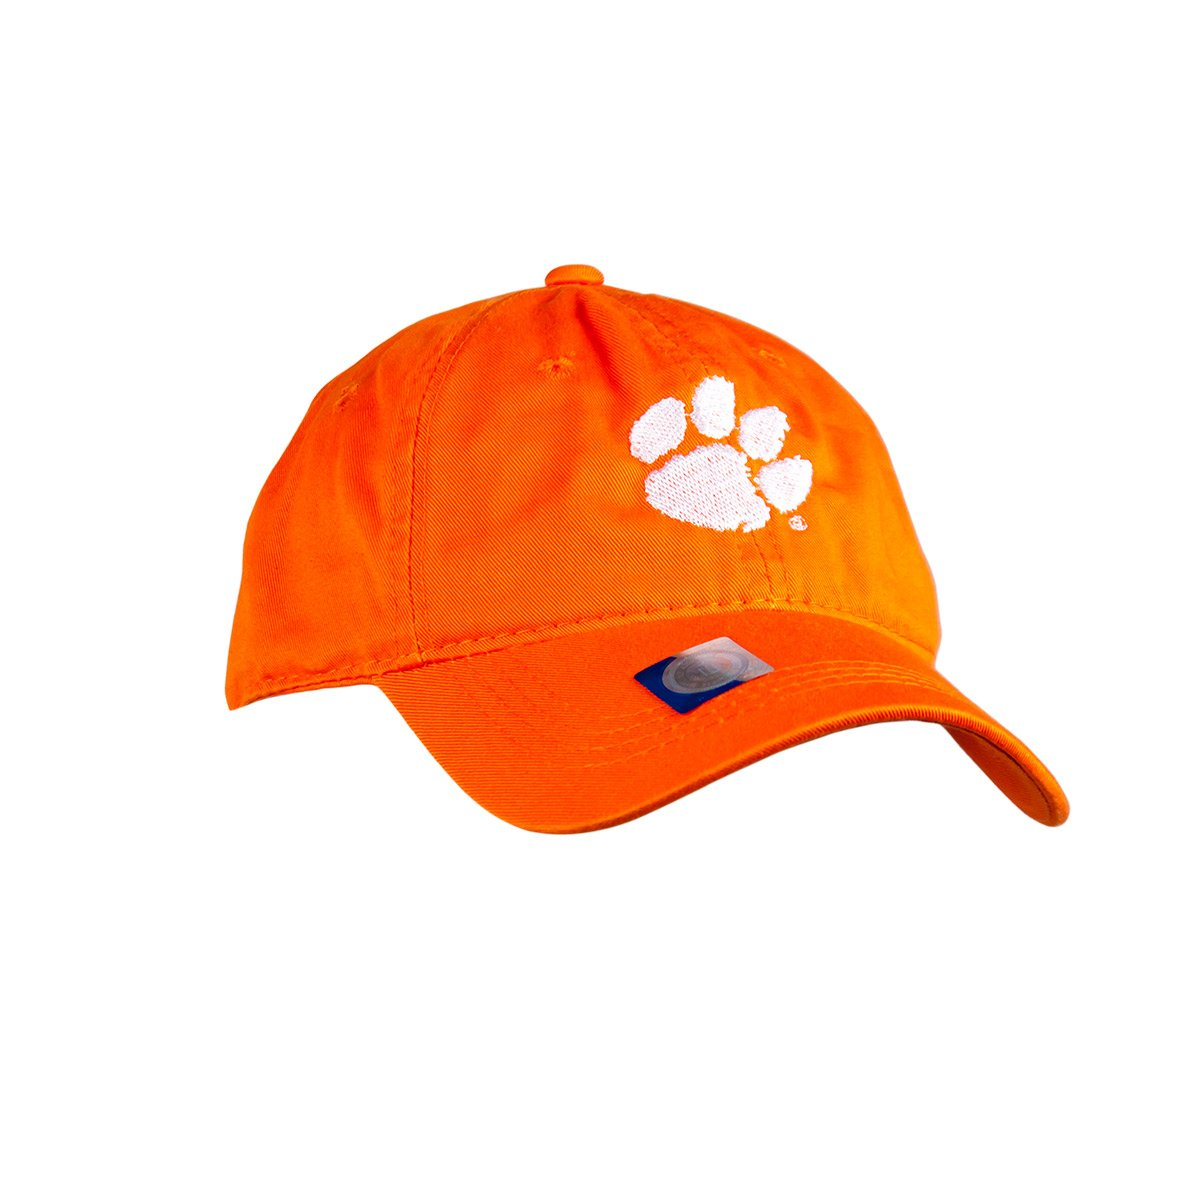 sale retailer a1781 575ce ... denmark clemson orange hat 047d3 bf472